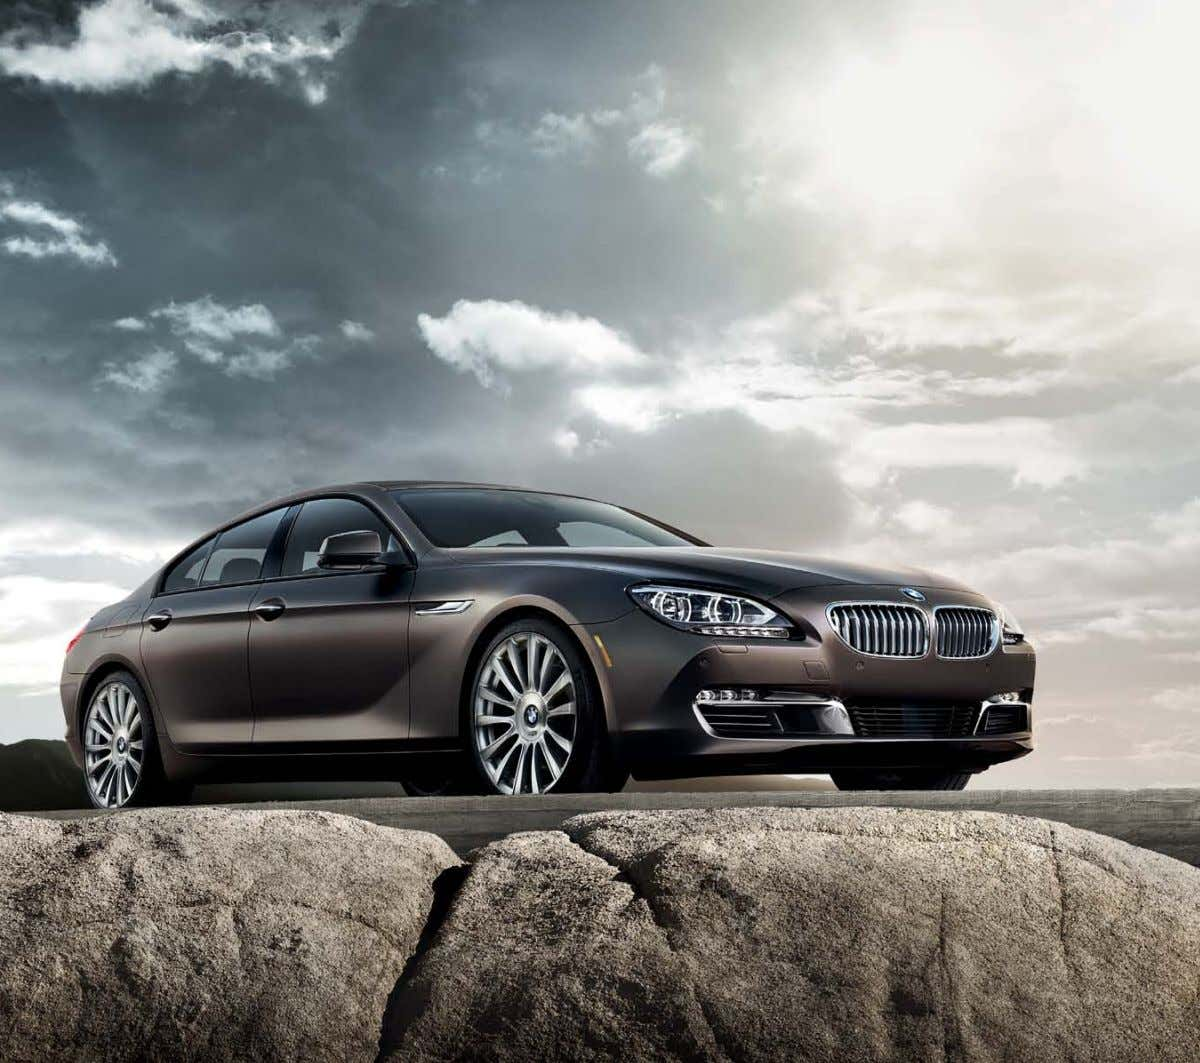 Beauty. Seldom Seen. IntroducIng the BmW 6 SerIeS gran coupé. The BMW 6 Series Gran